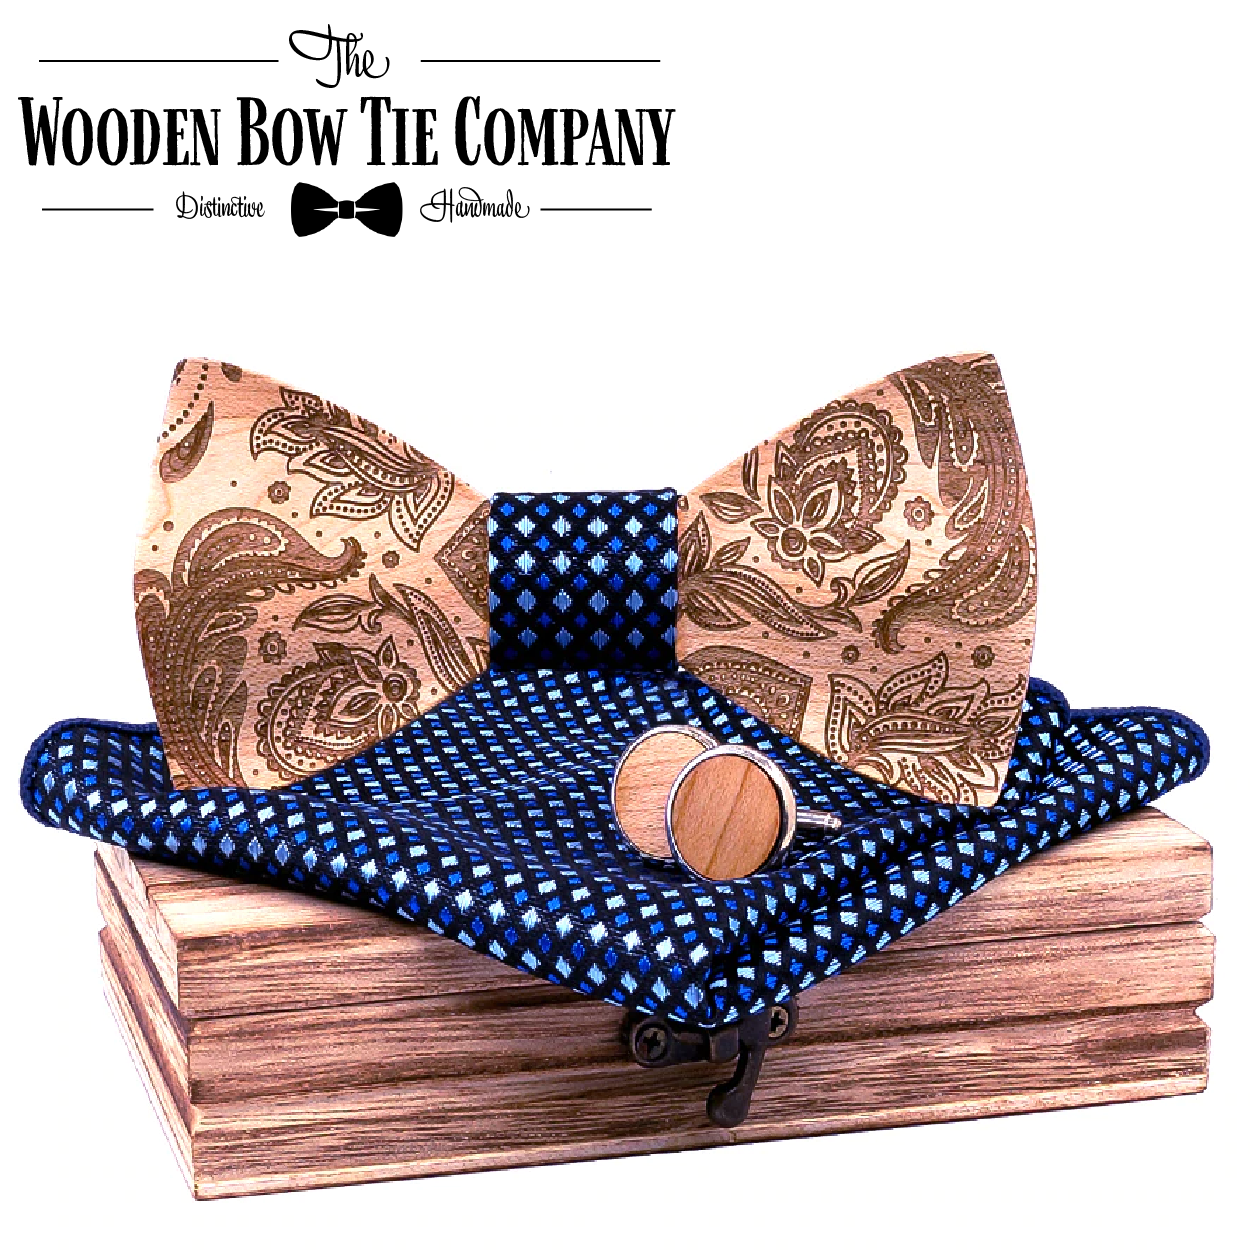 646b7ae75df9 The Wooden Bow Tie Company   Wooden Tie   Wooden Bow Ties   Ties UK ...